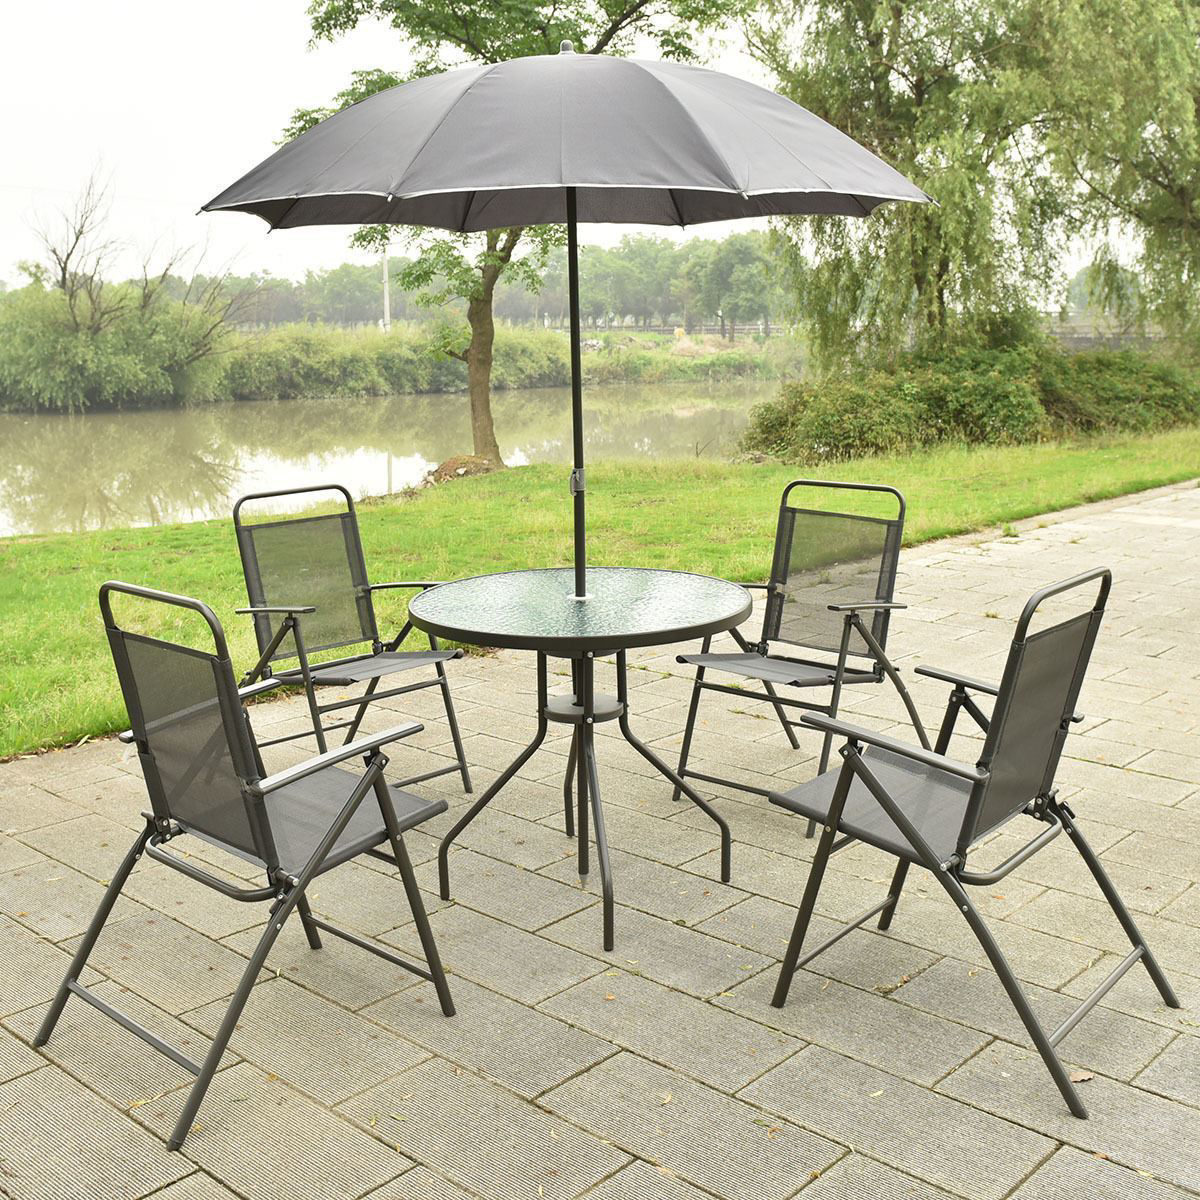 Picture of Outdoor Patio Furture Set Table with 4 Folding Chars and Umbrella Gray 6 Pieces